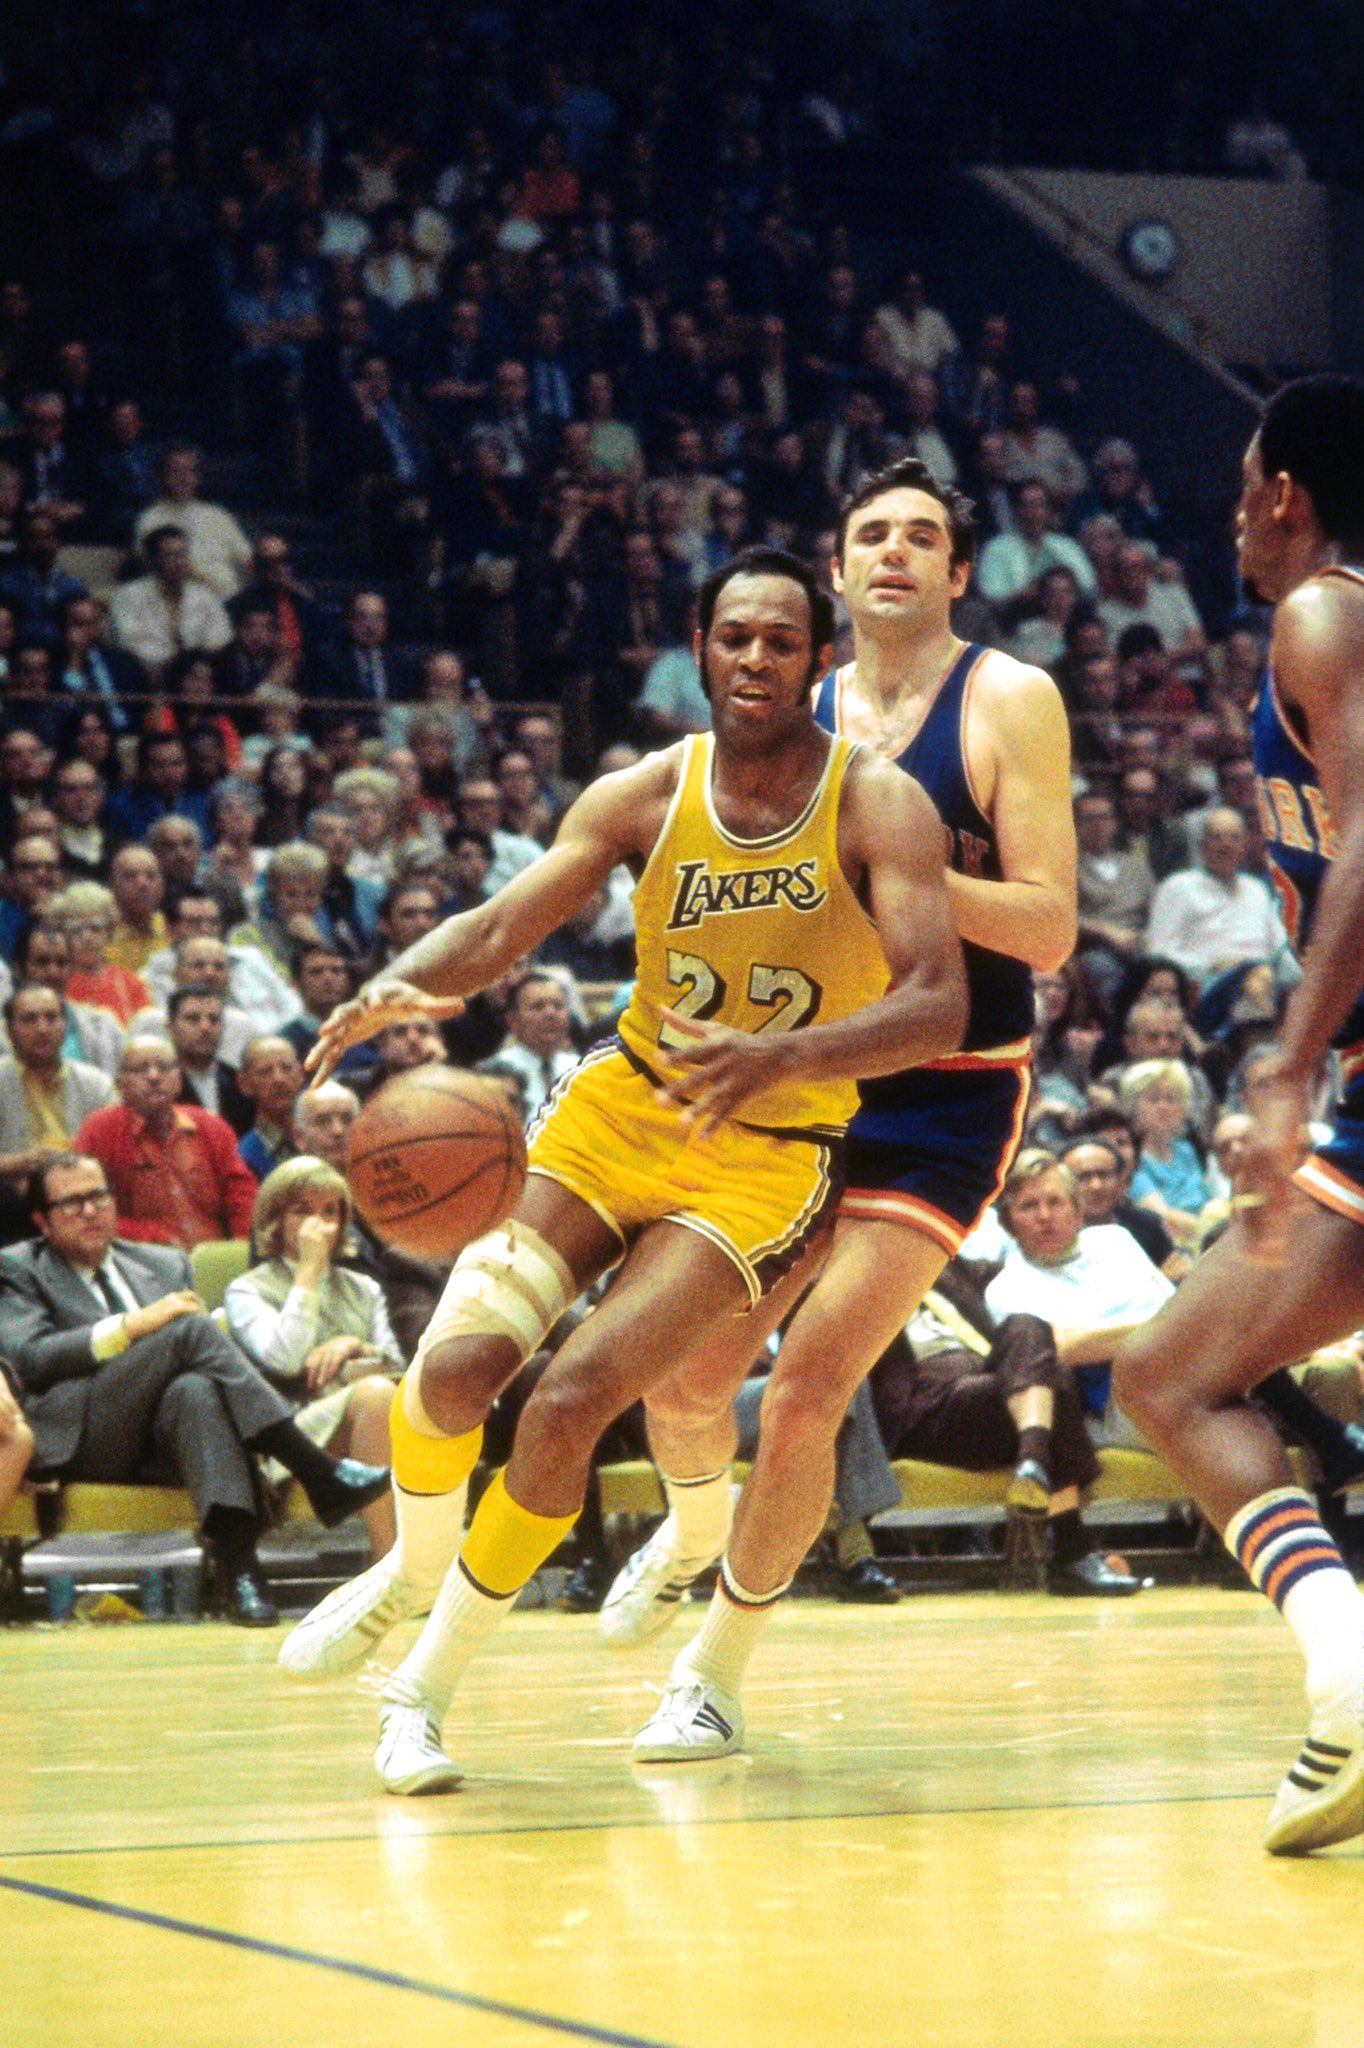 To wish Elgin Baylor a Happy Birthday!  : Wen Roberts/NBAE via Getty Images